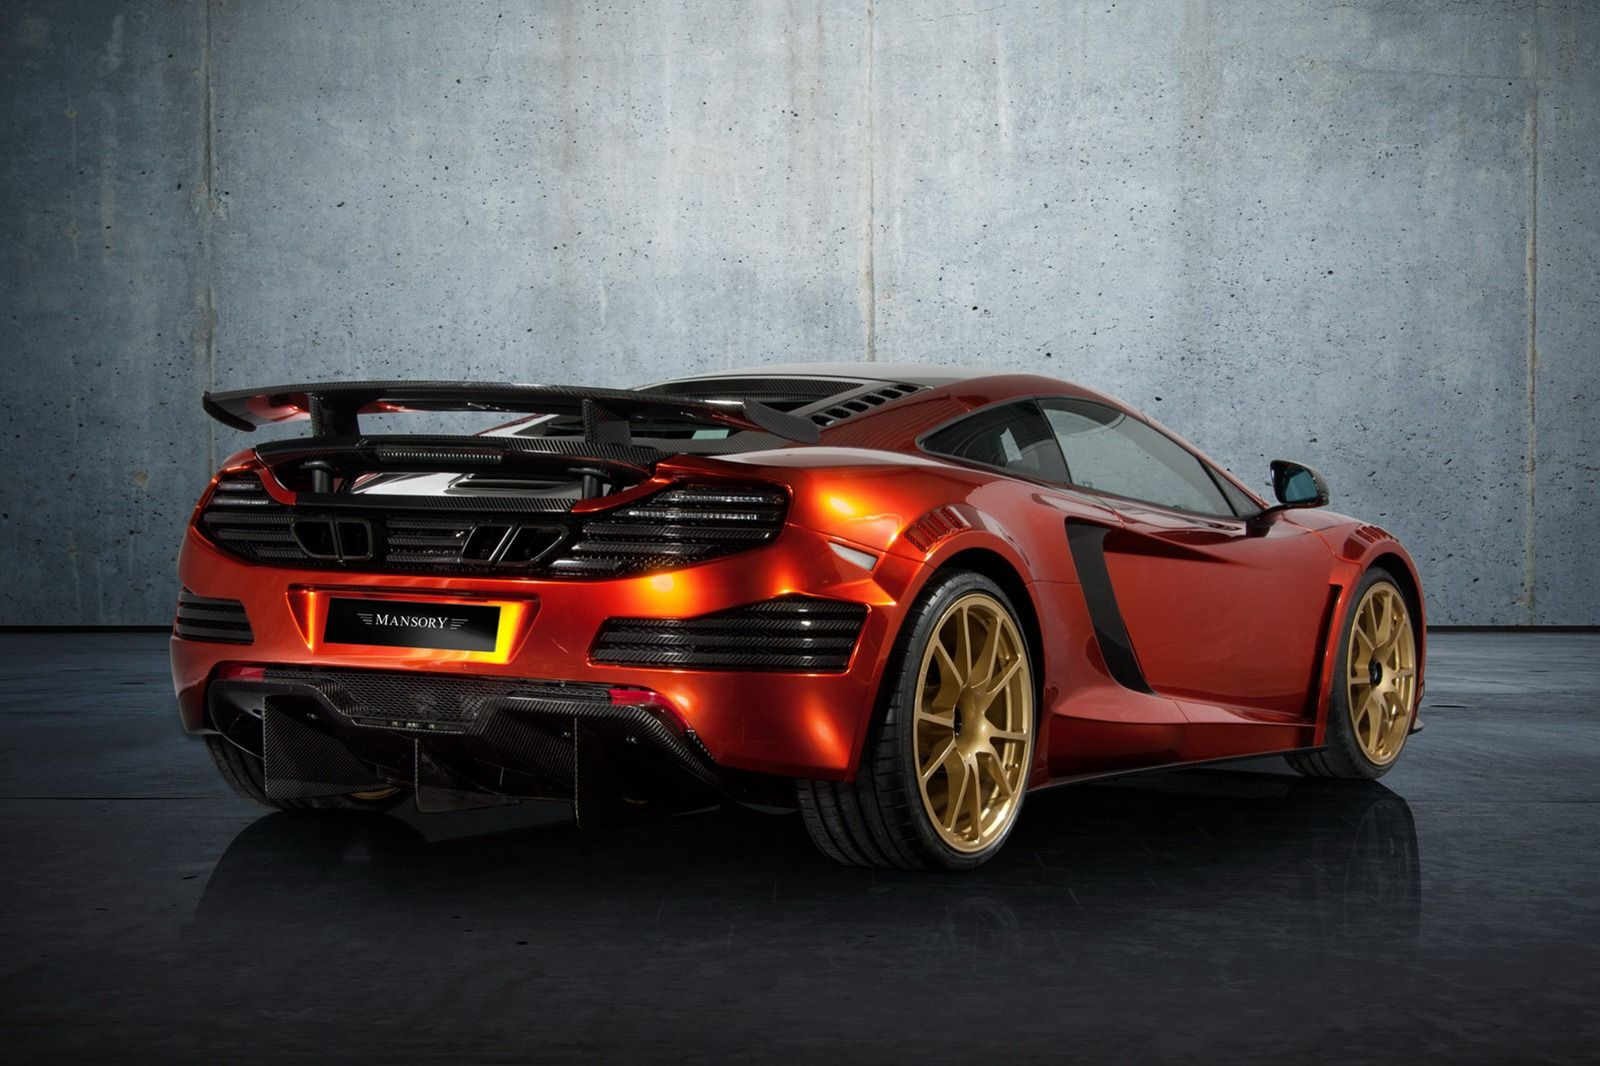 The Mansory guys are at it again, super charging the ...